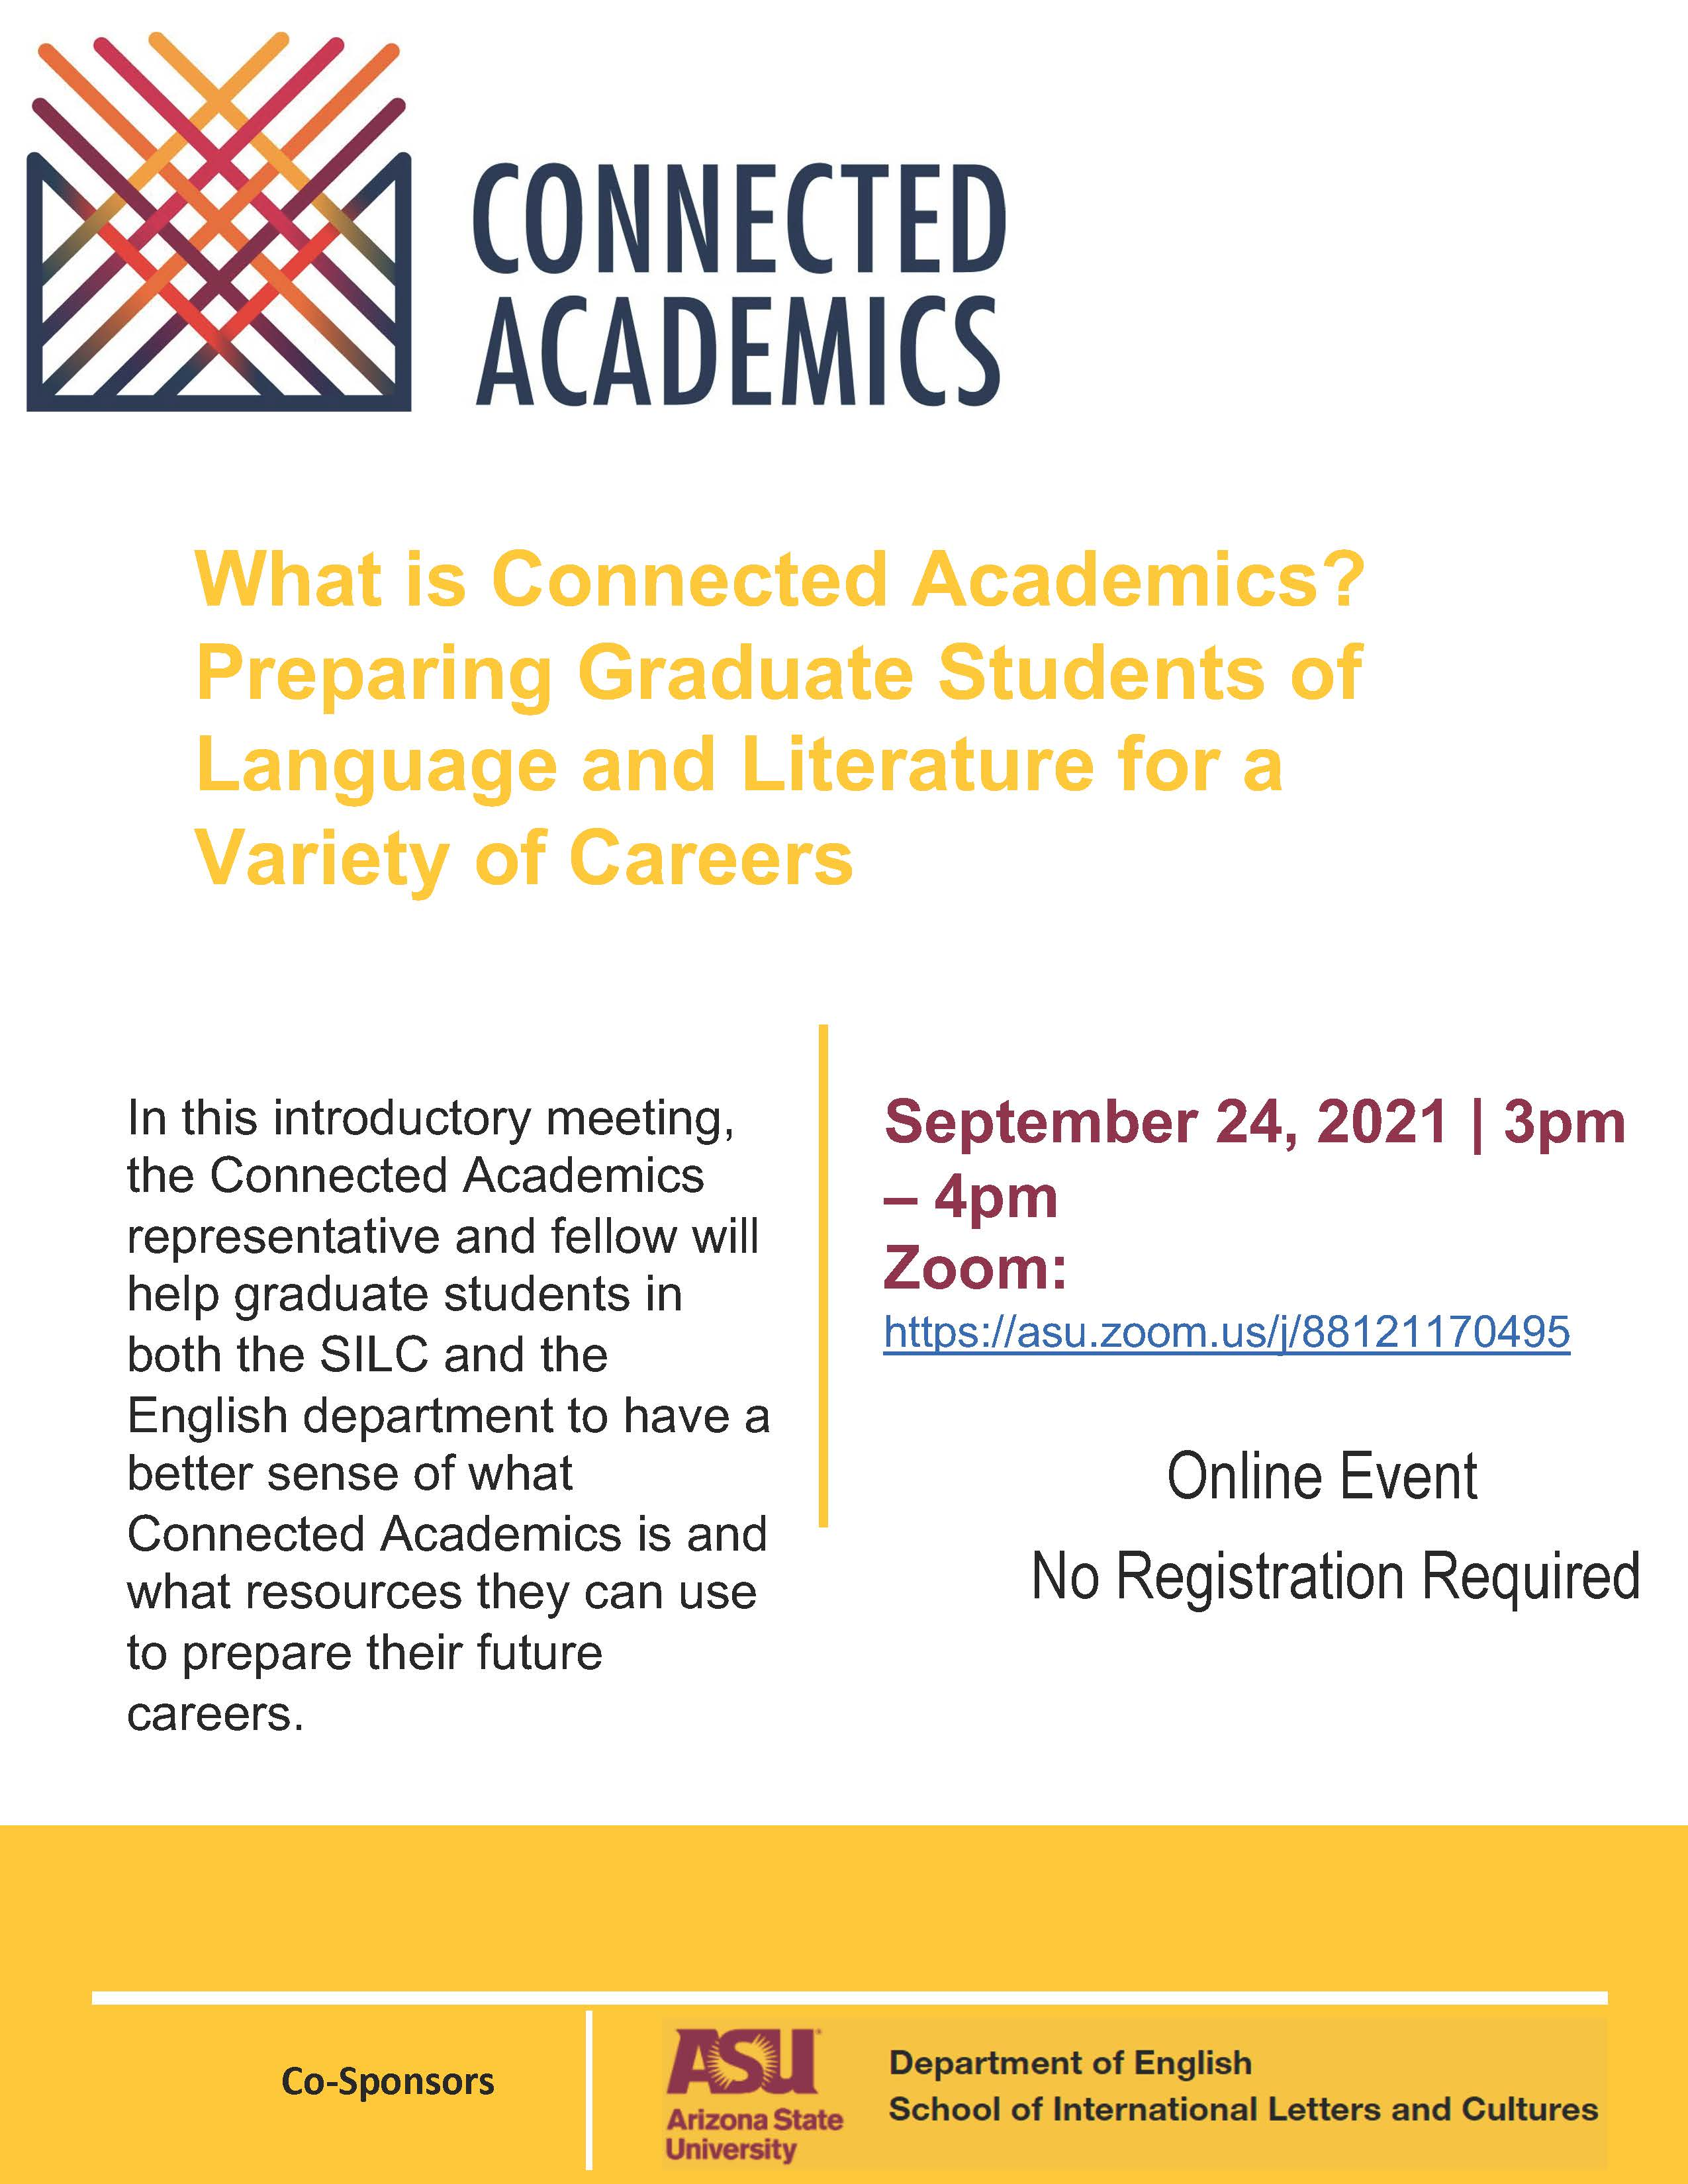 Flyer advertising the fall 2021 Connected Academics intro meeting